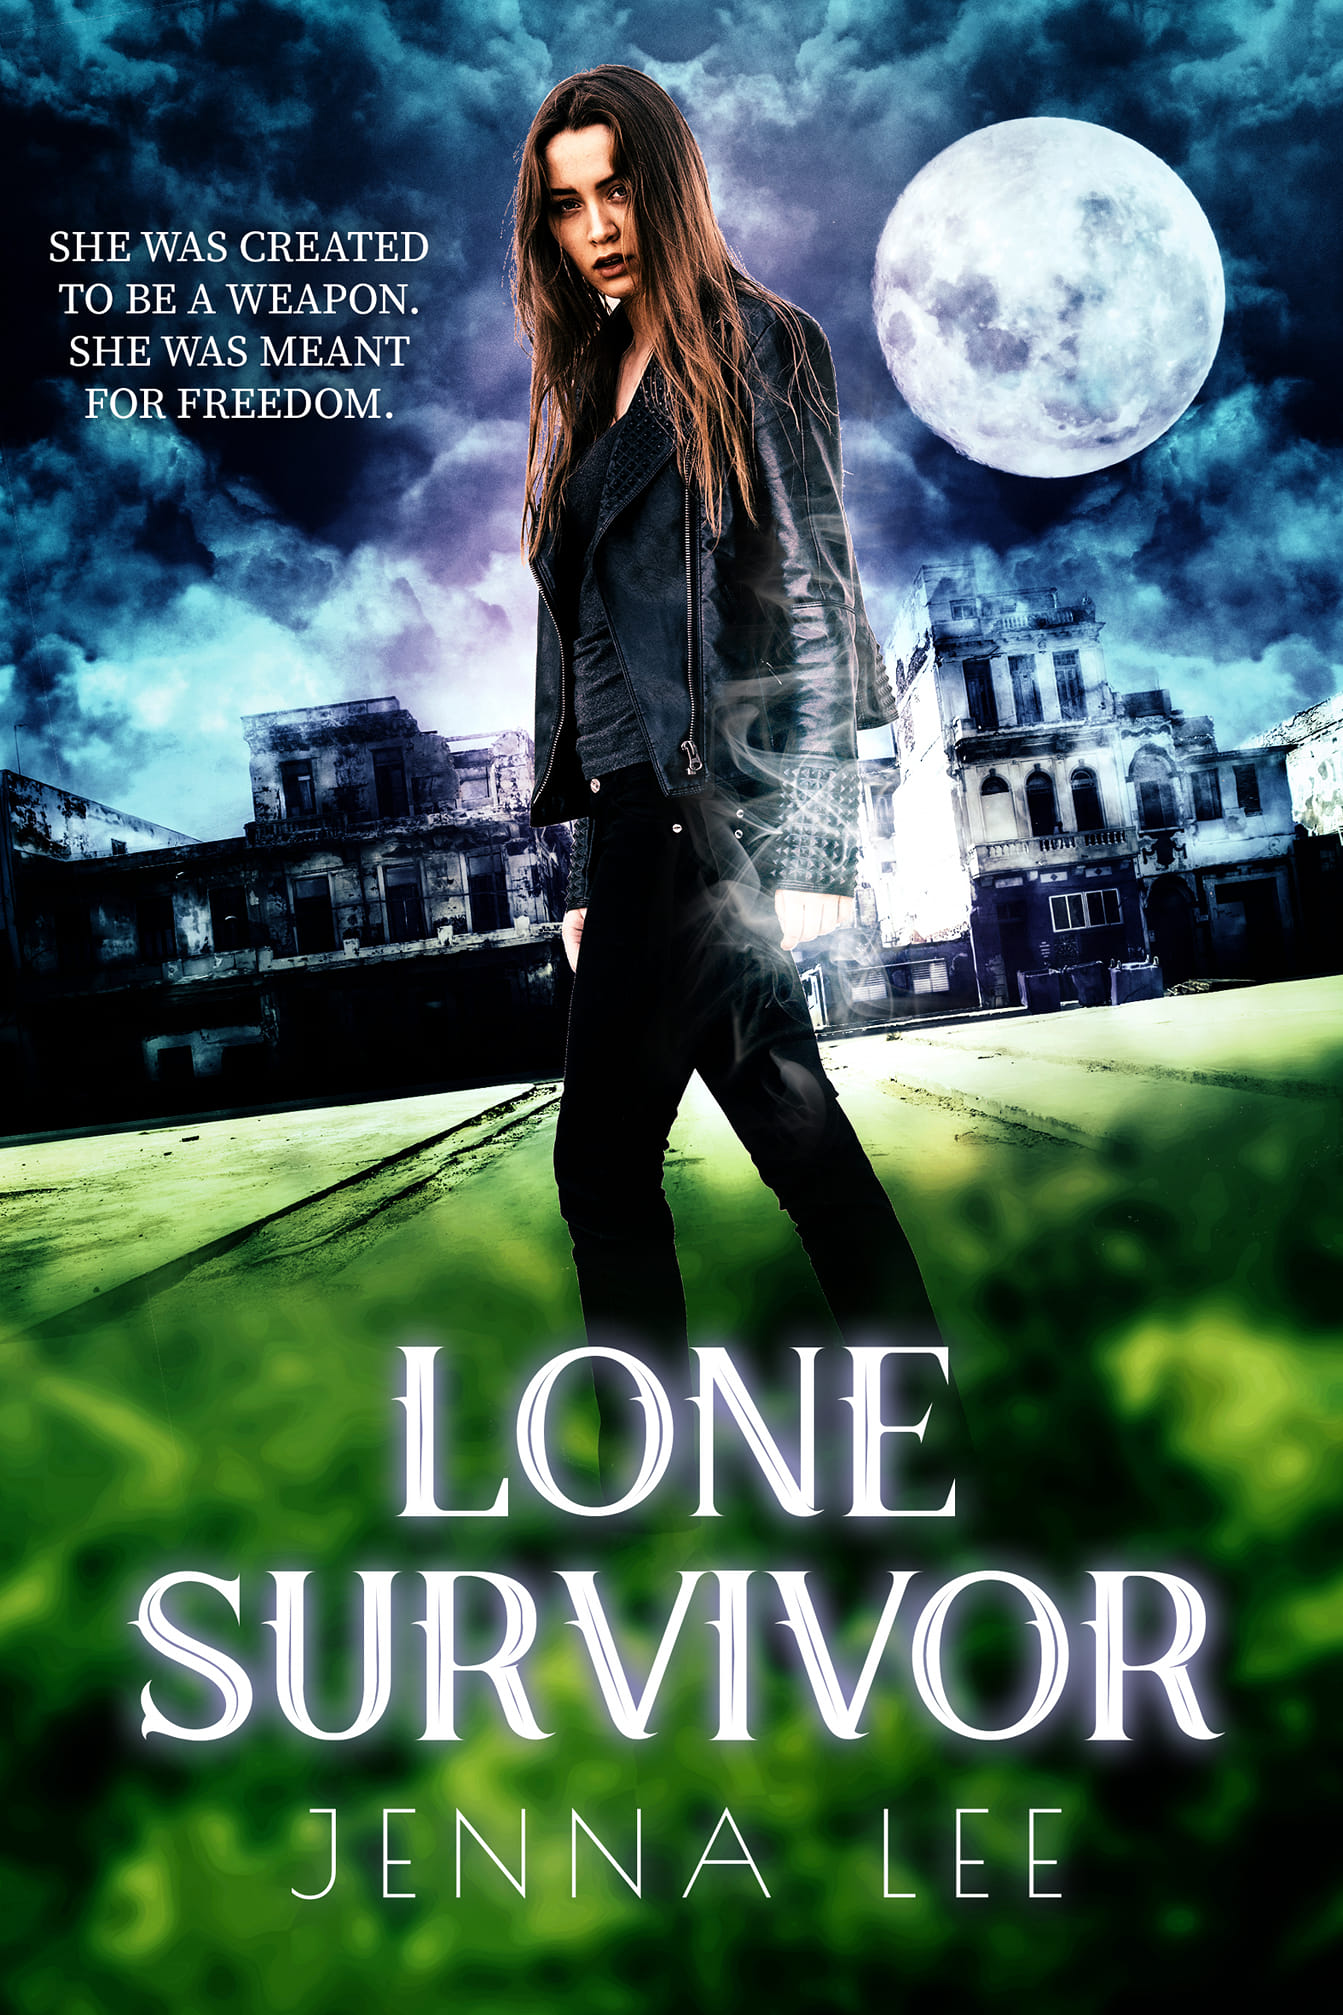 LONE SURVIVOR   Jenna Lee    Sadie was created in a lab - an experiment that scientists were supposed to get rid of on her eighteenth birthday. But a fire breaks out and she's the only survivor. Or is she?  Now, she's tracking other misfits like her before the secret government agency that created her can track them all down for themselves.